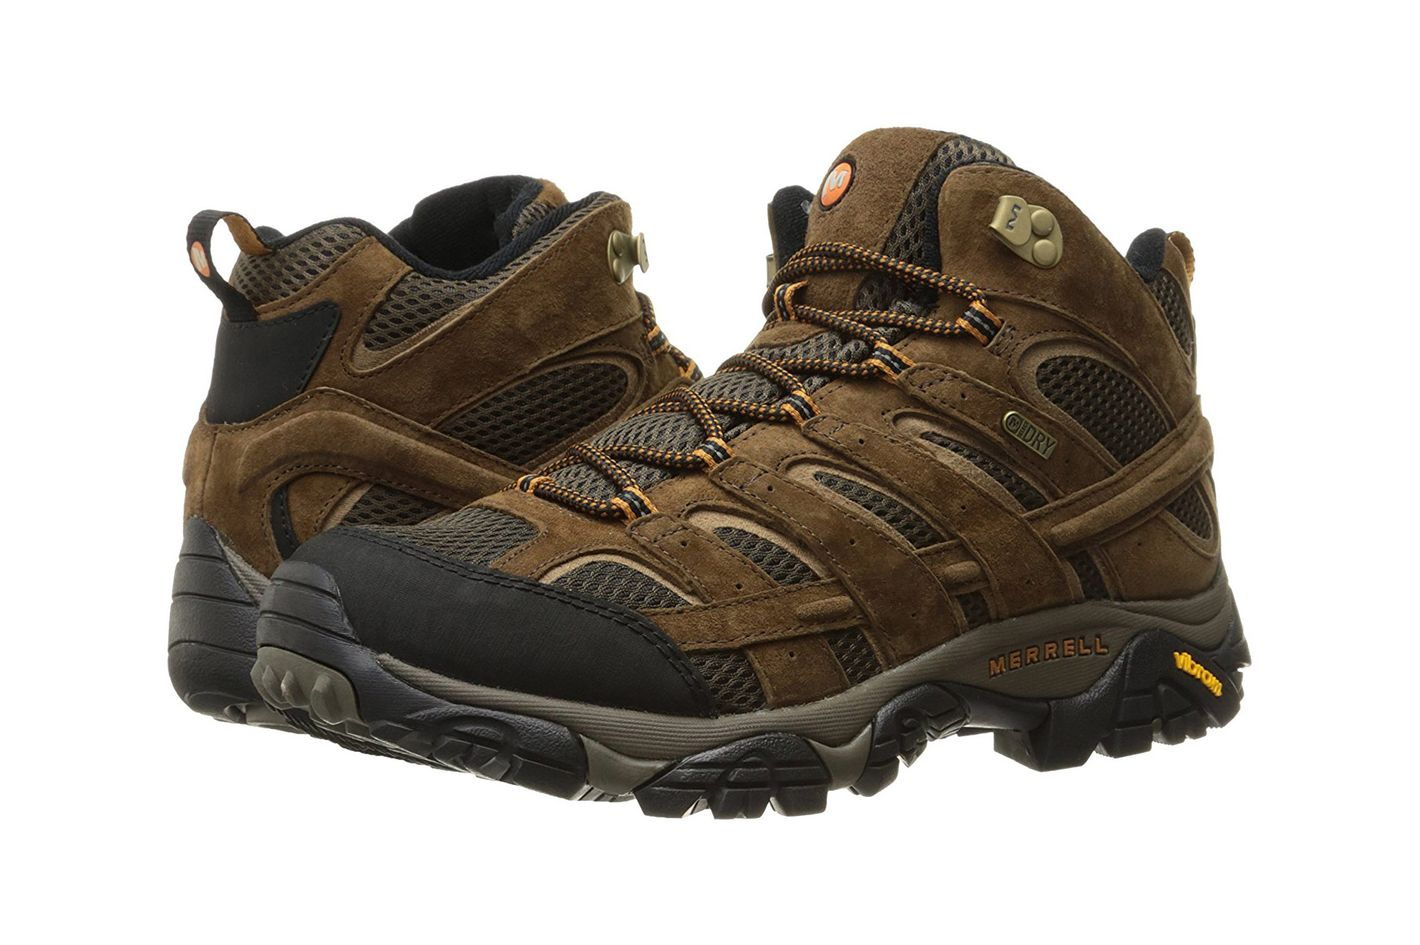 95def57e930 Merrell Men s Moab 2 Mid Waterproof Hiking Boot